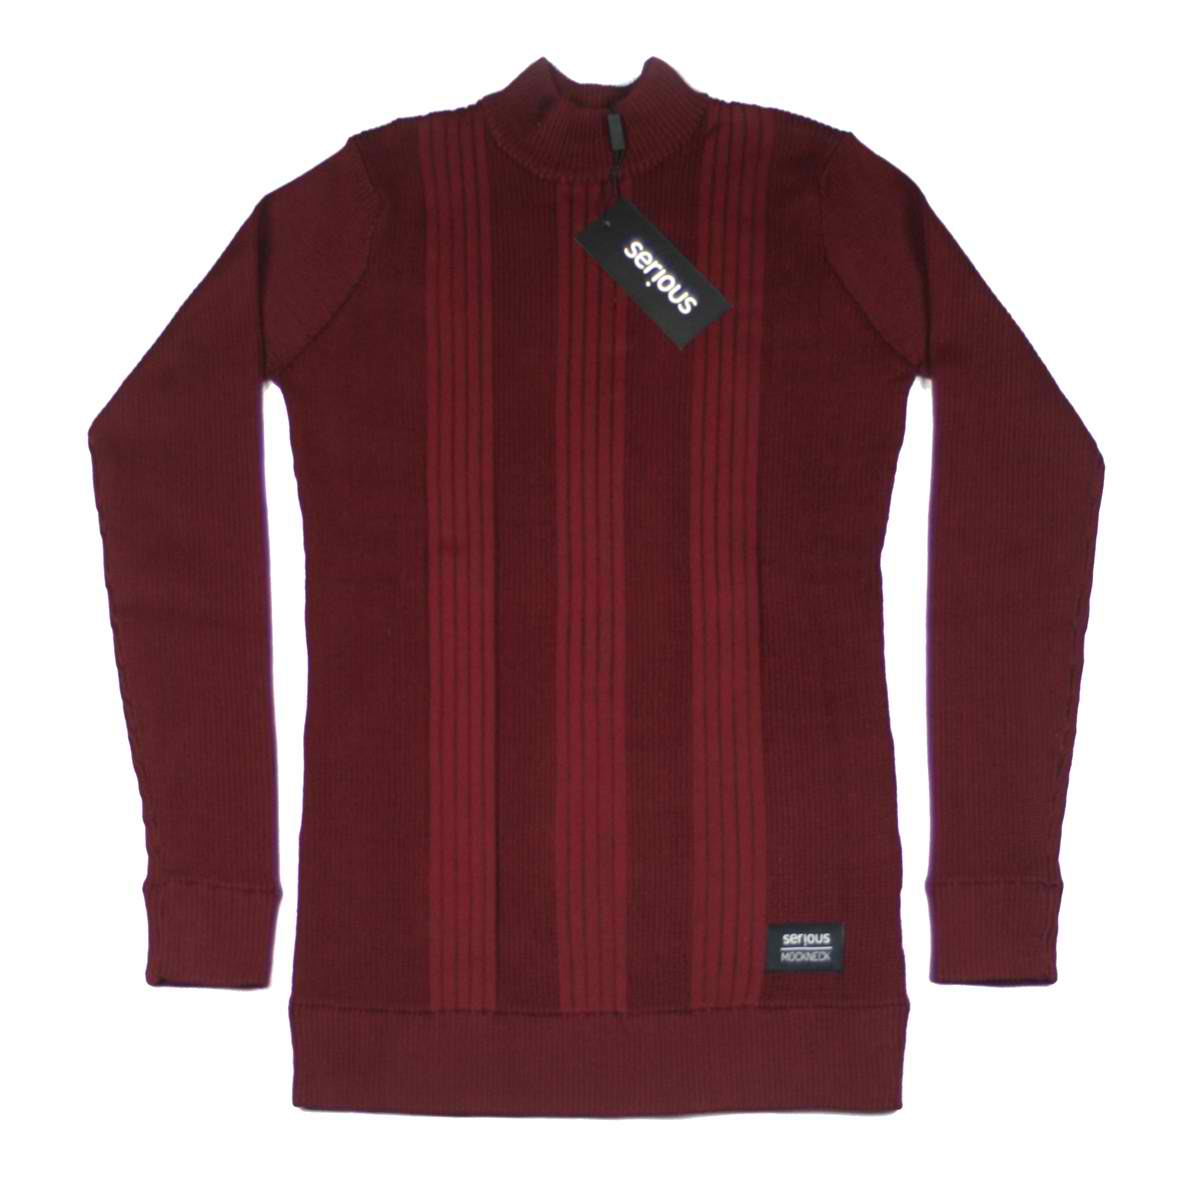 Serious Brand Mock Neck Long Sleeve Colors